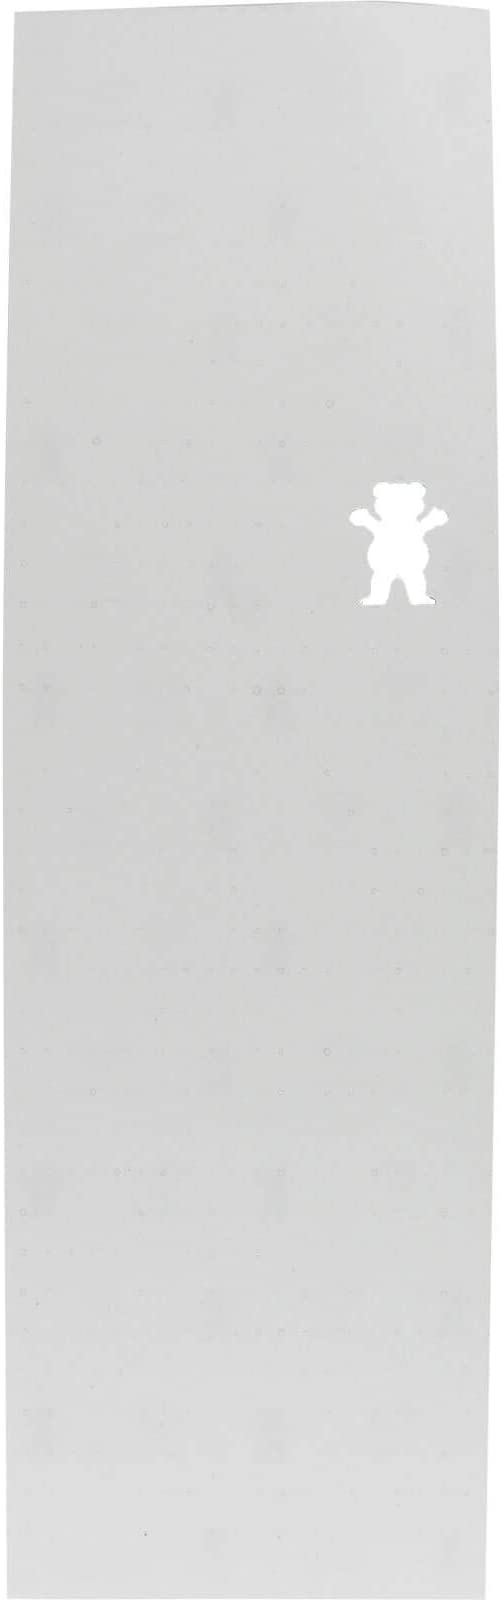 Grizzly Clear Cut Out 10 inch Griptape